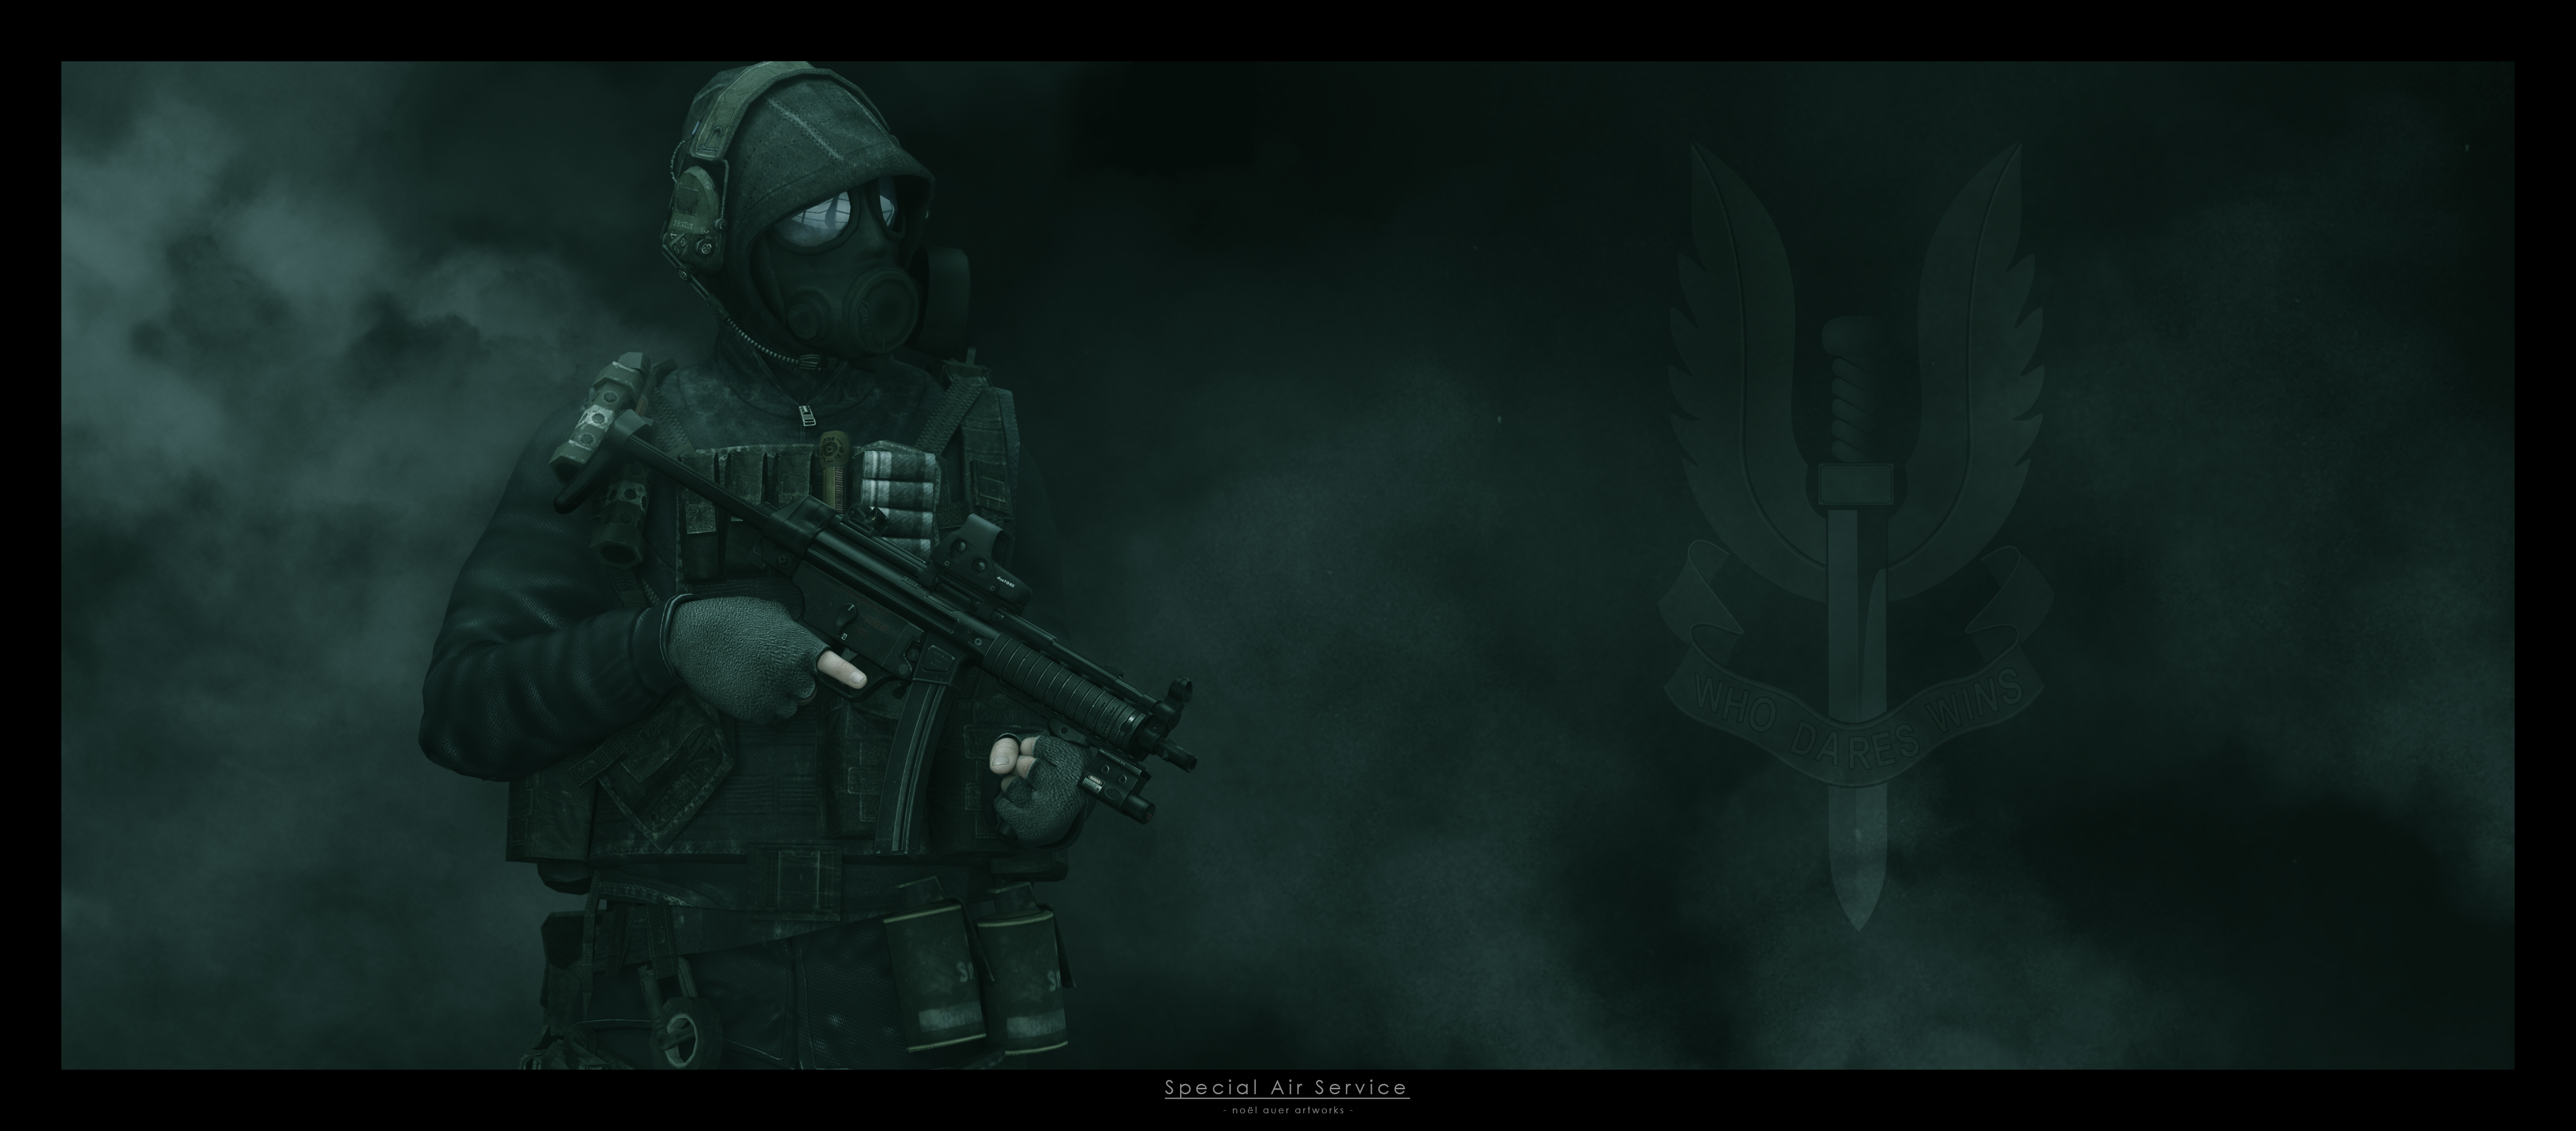 special air service wallpaper - photo #2